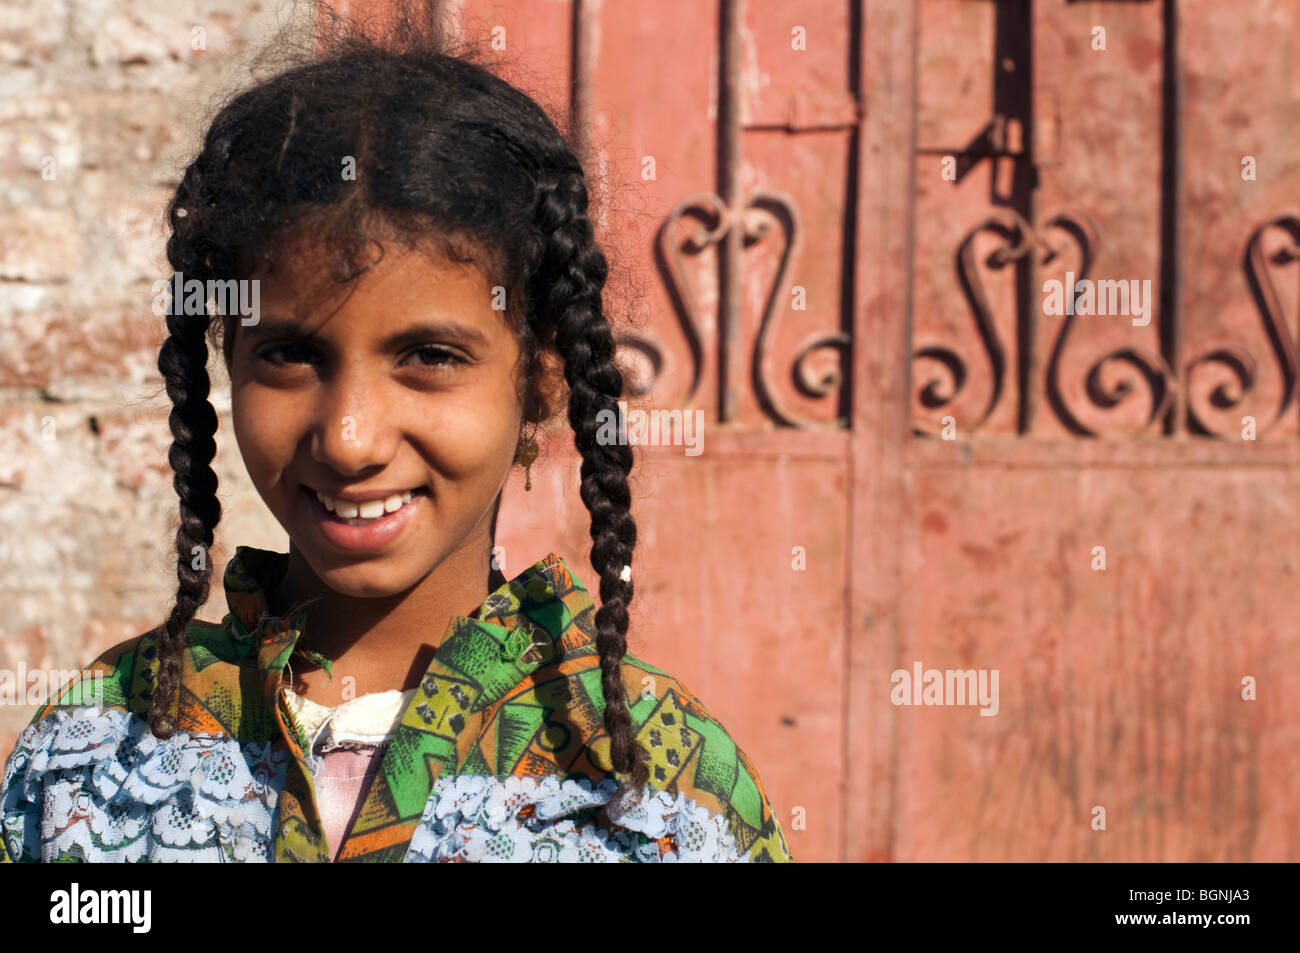 Young Egyptian schoolgirl posing in front of an iron gate that mirrors her braids. - Stock Image